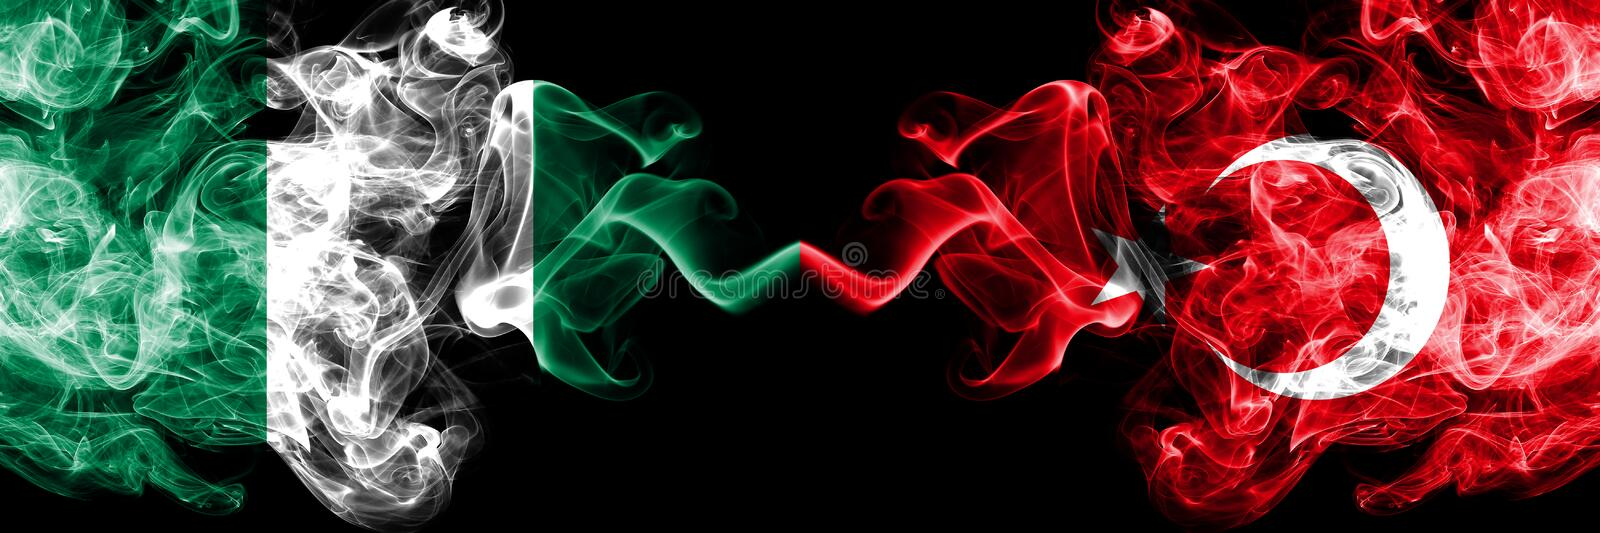 Nigeria vs Turkey, Turkish abstract smoky mystic flags placed side by side. Thick colored silky smoke flags of Nigerian and Turkey stock illustration